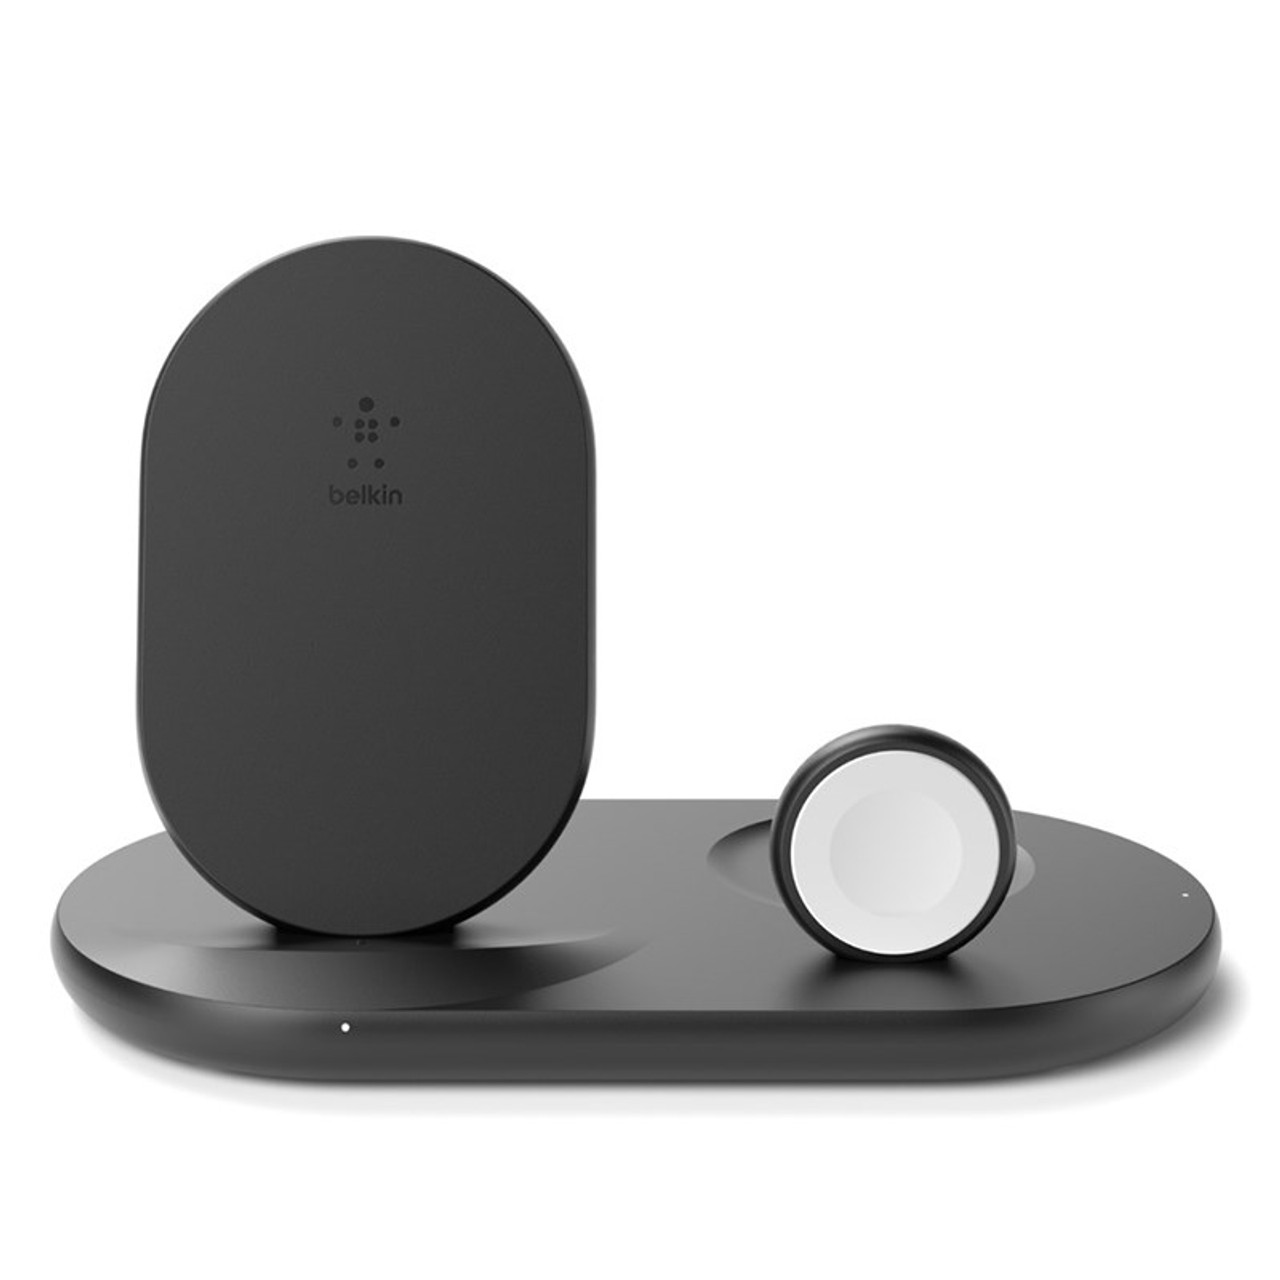 Image for Belkin Boost Charge 3-in-1 Wireless Charging Dock for Apple Devices - Black CX Computer Superstore